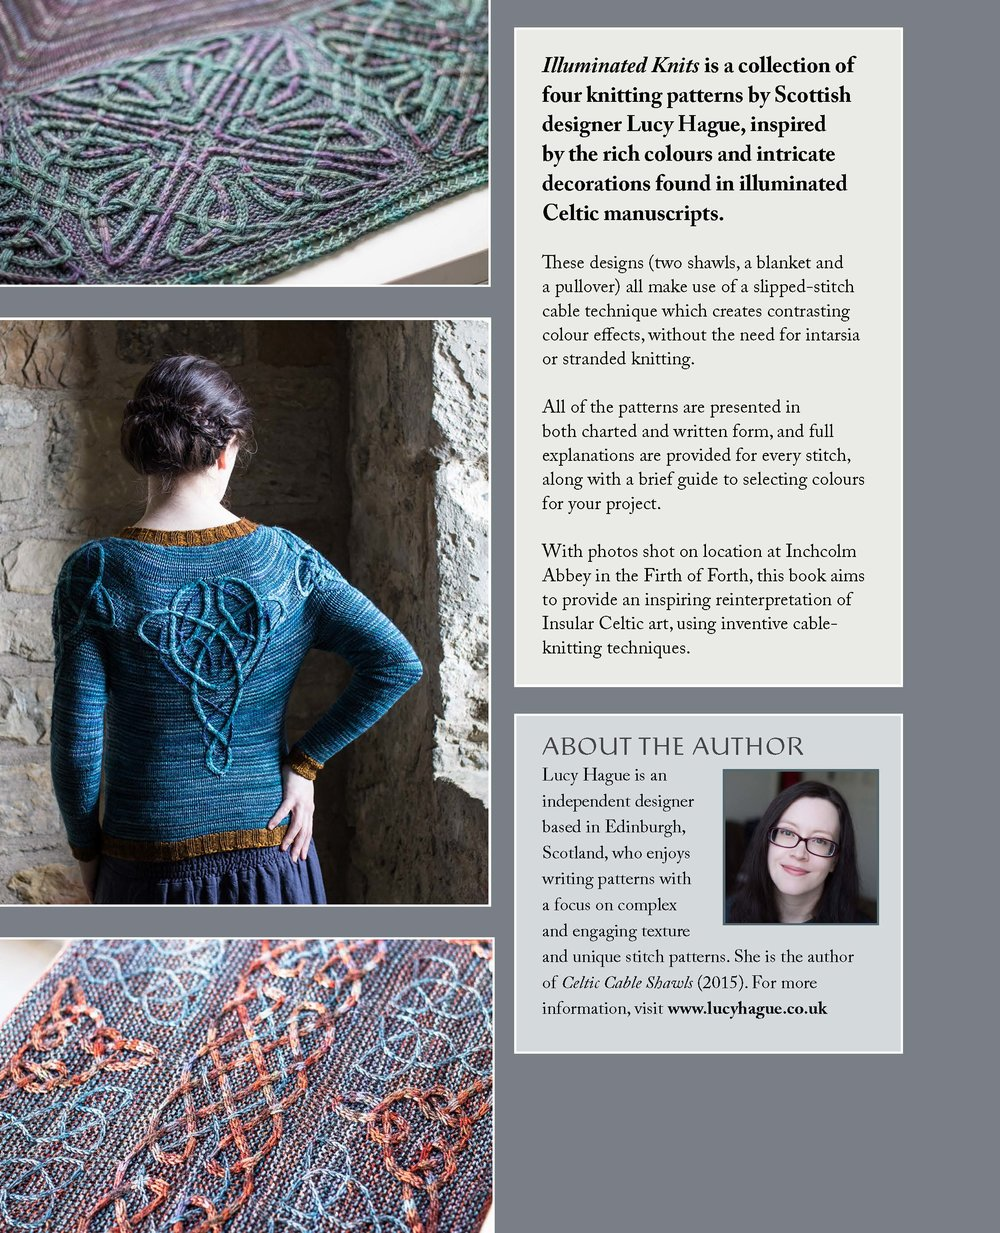 illuminated-knits-v1-0-cover_page_4.jpg